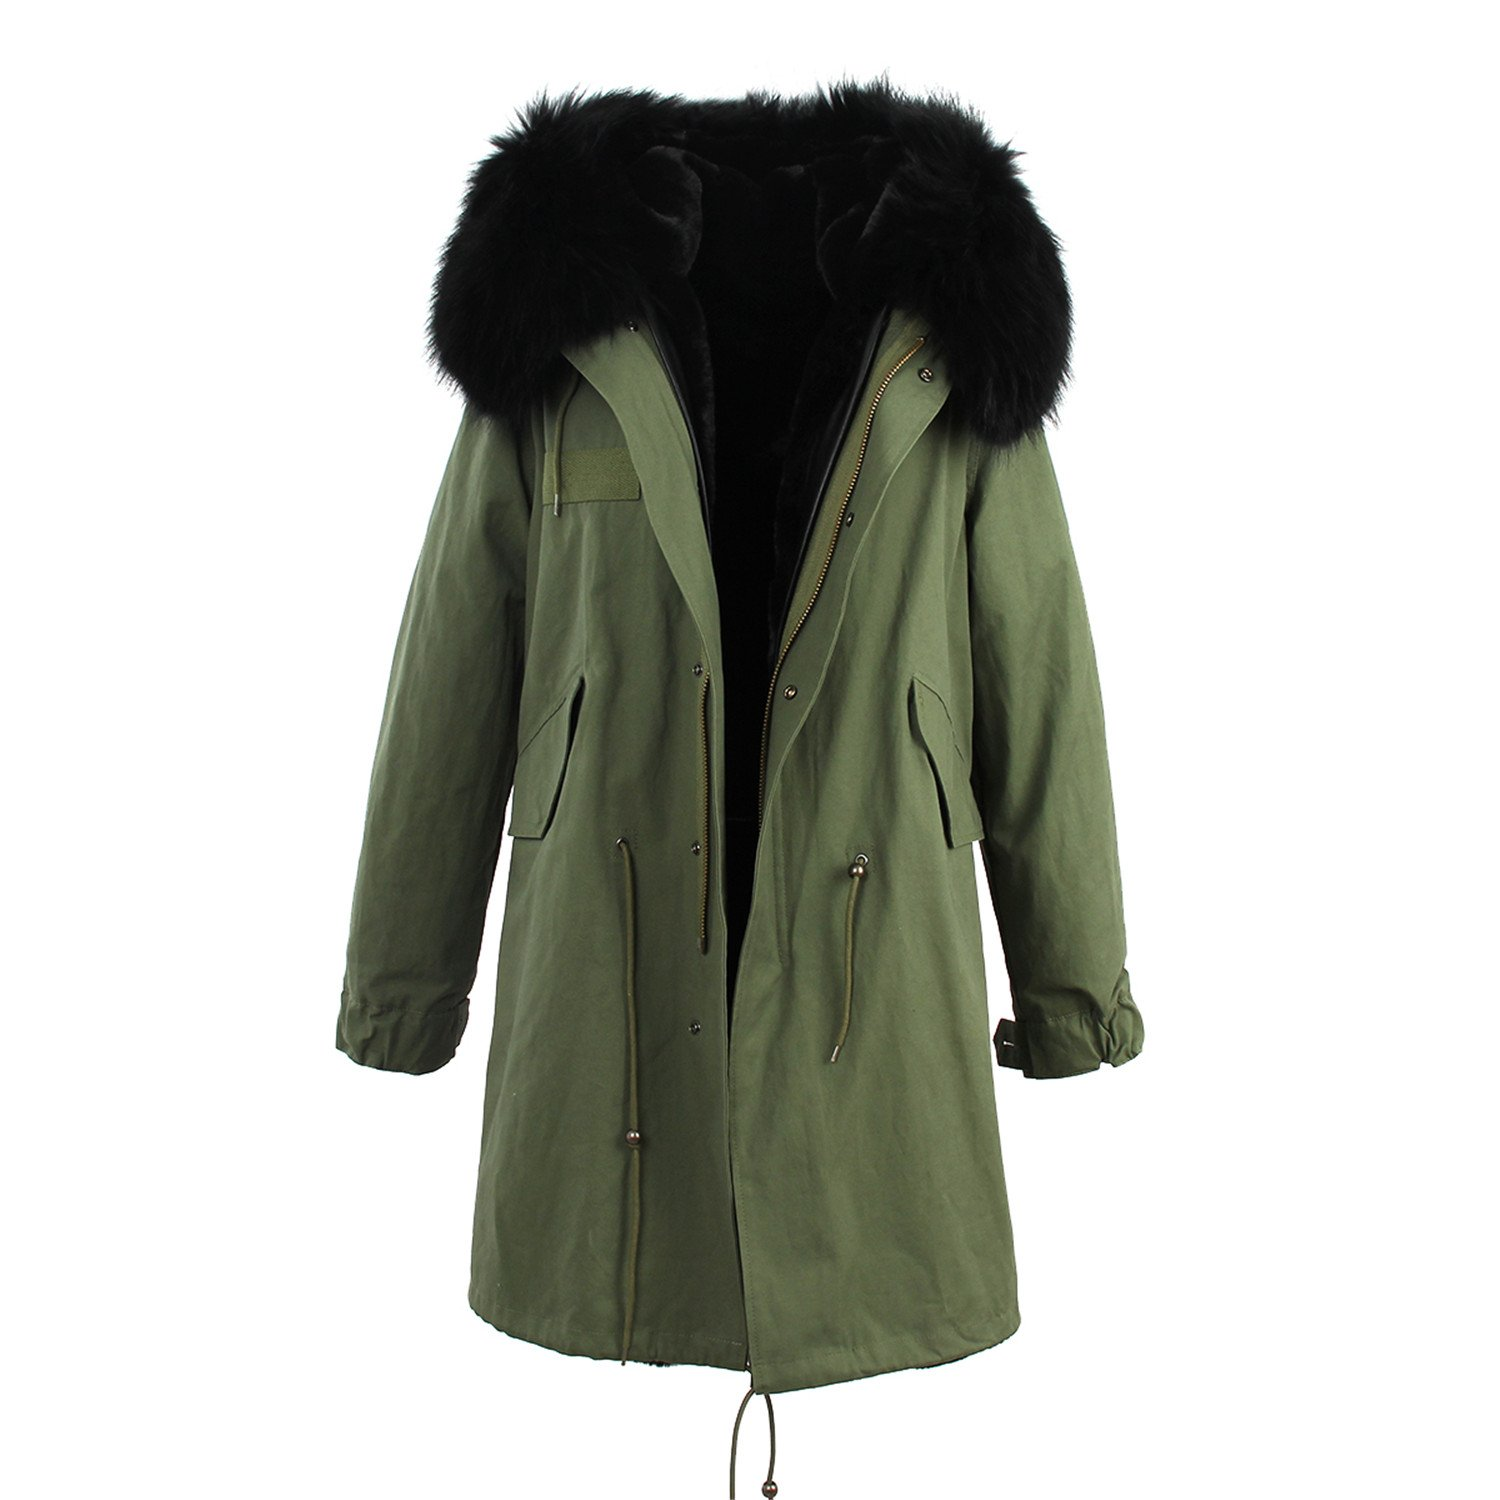 ADC-Hotsell women's army green Large color raccoon fur hooded coat outwear long detachable lining winter jacket brand style color 9 M